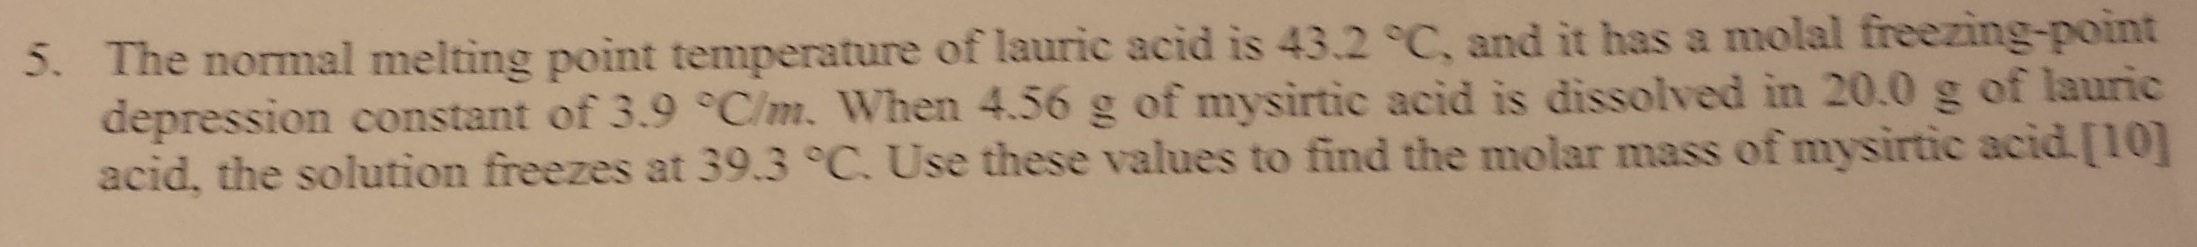 freezing point depression lauric acid How can the answer be improved.